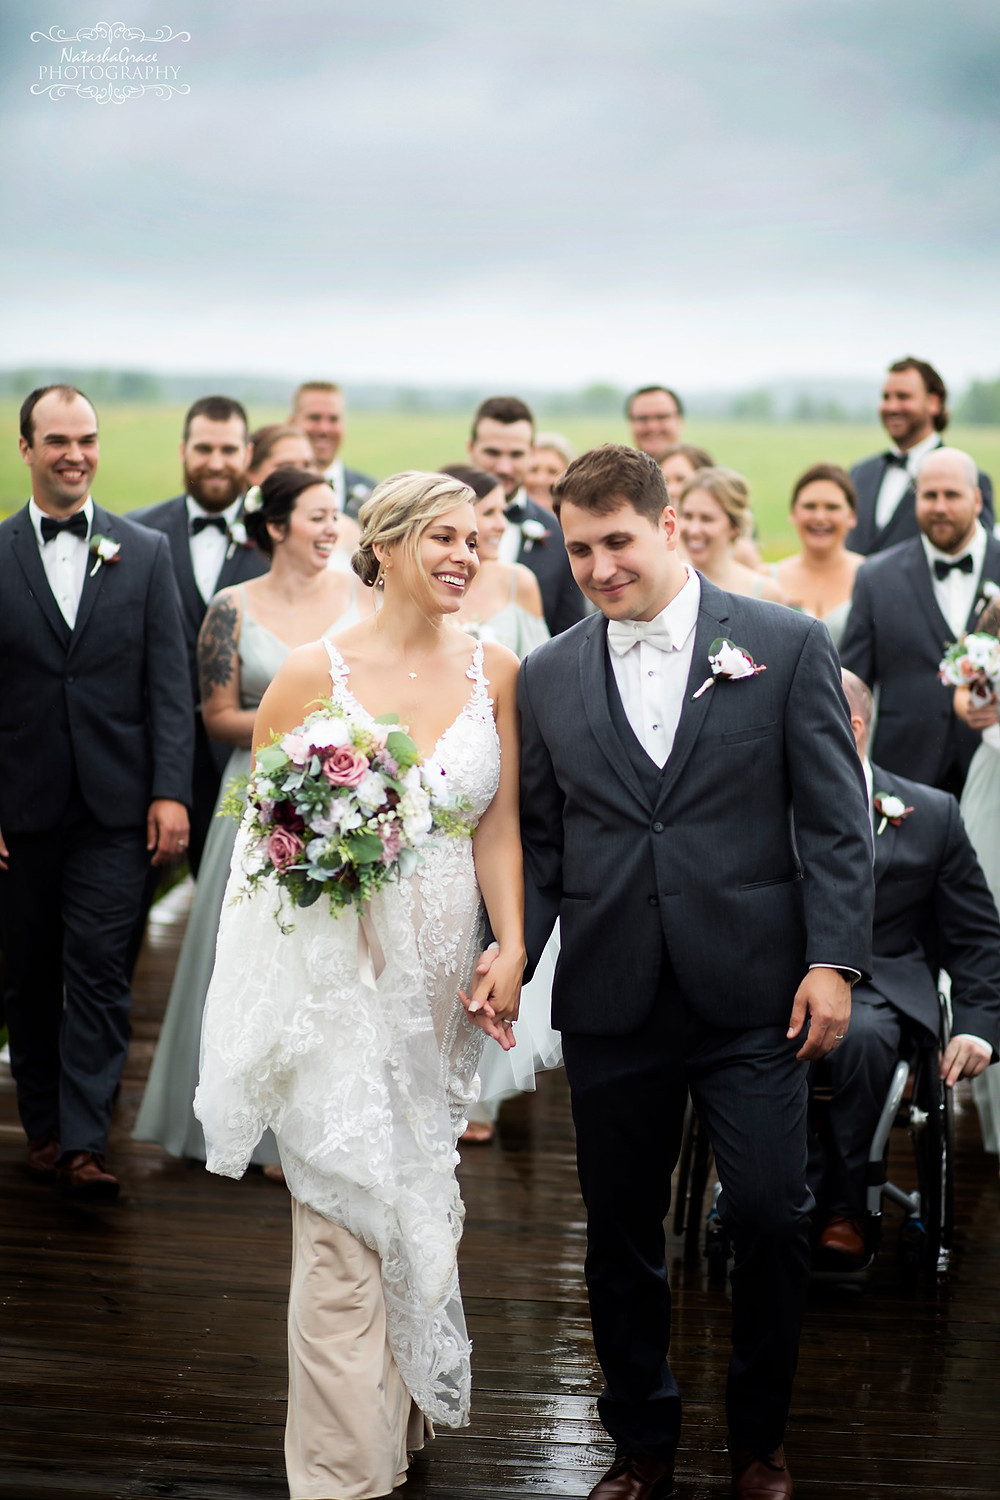 Ashley and Zack's wedding had rain most of the day.  They were still able to get some outside bridal party photos. One of the groomseman is in a wheelchair but was still able to get around the barn easily.